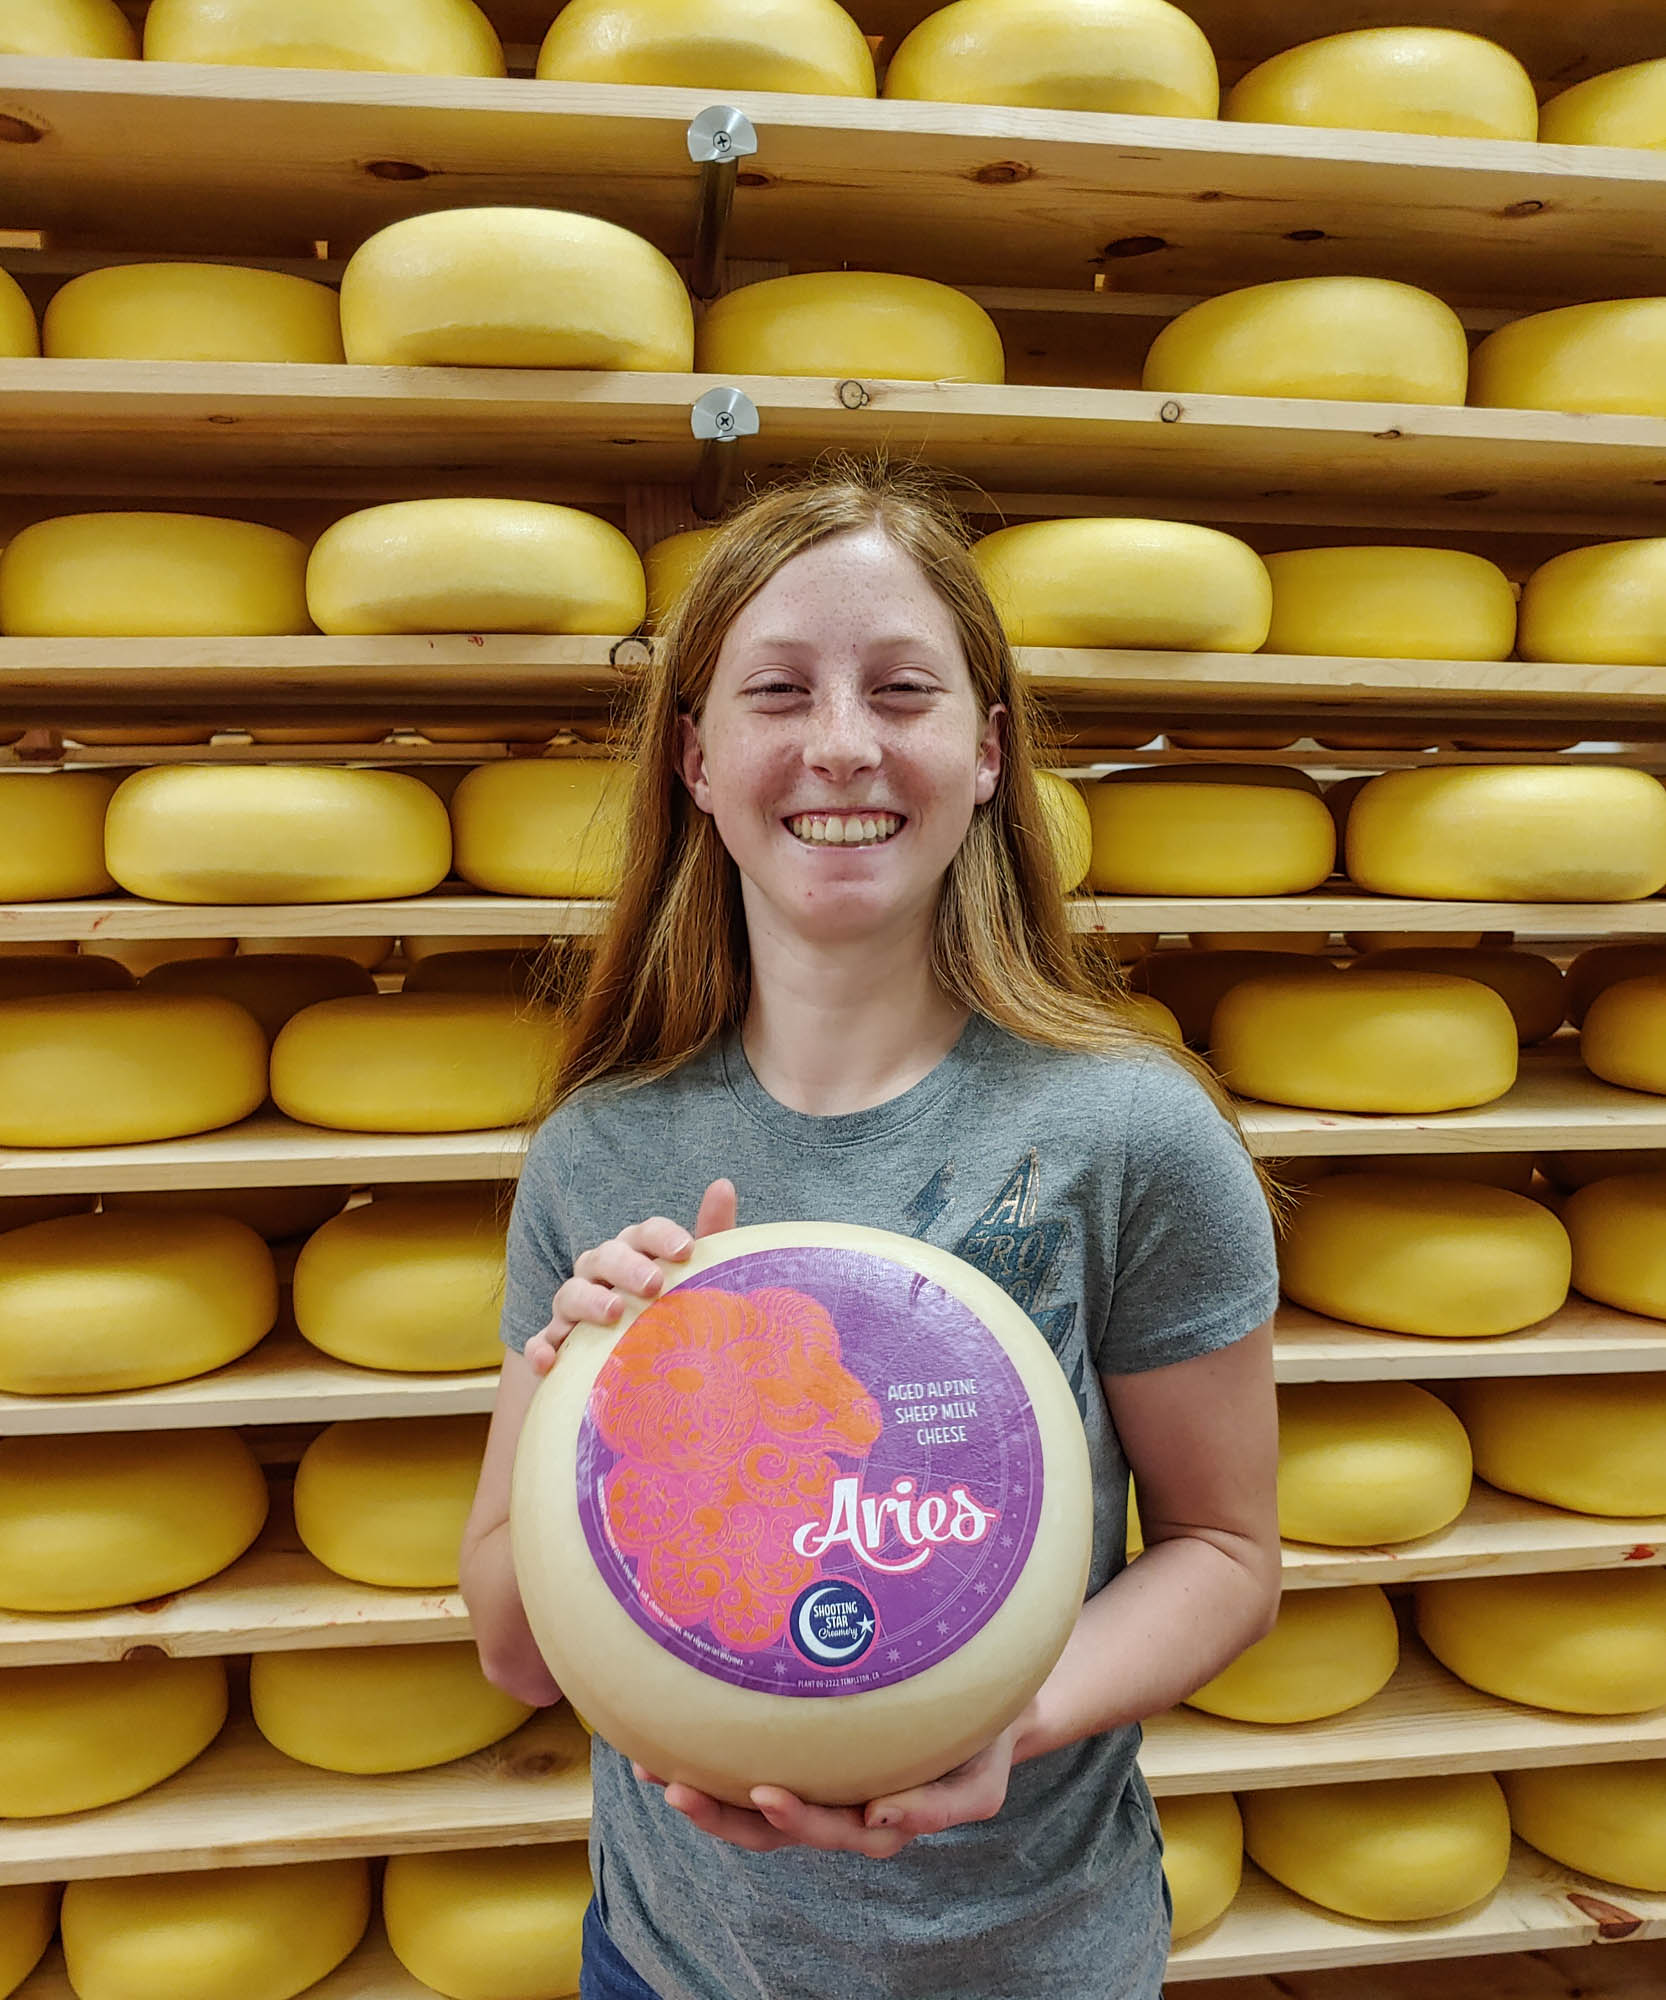 Avery of Shooting Star Creamery, holding Aries cheese